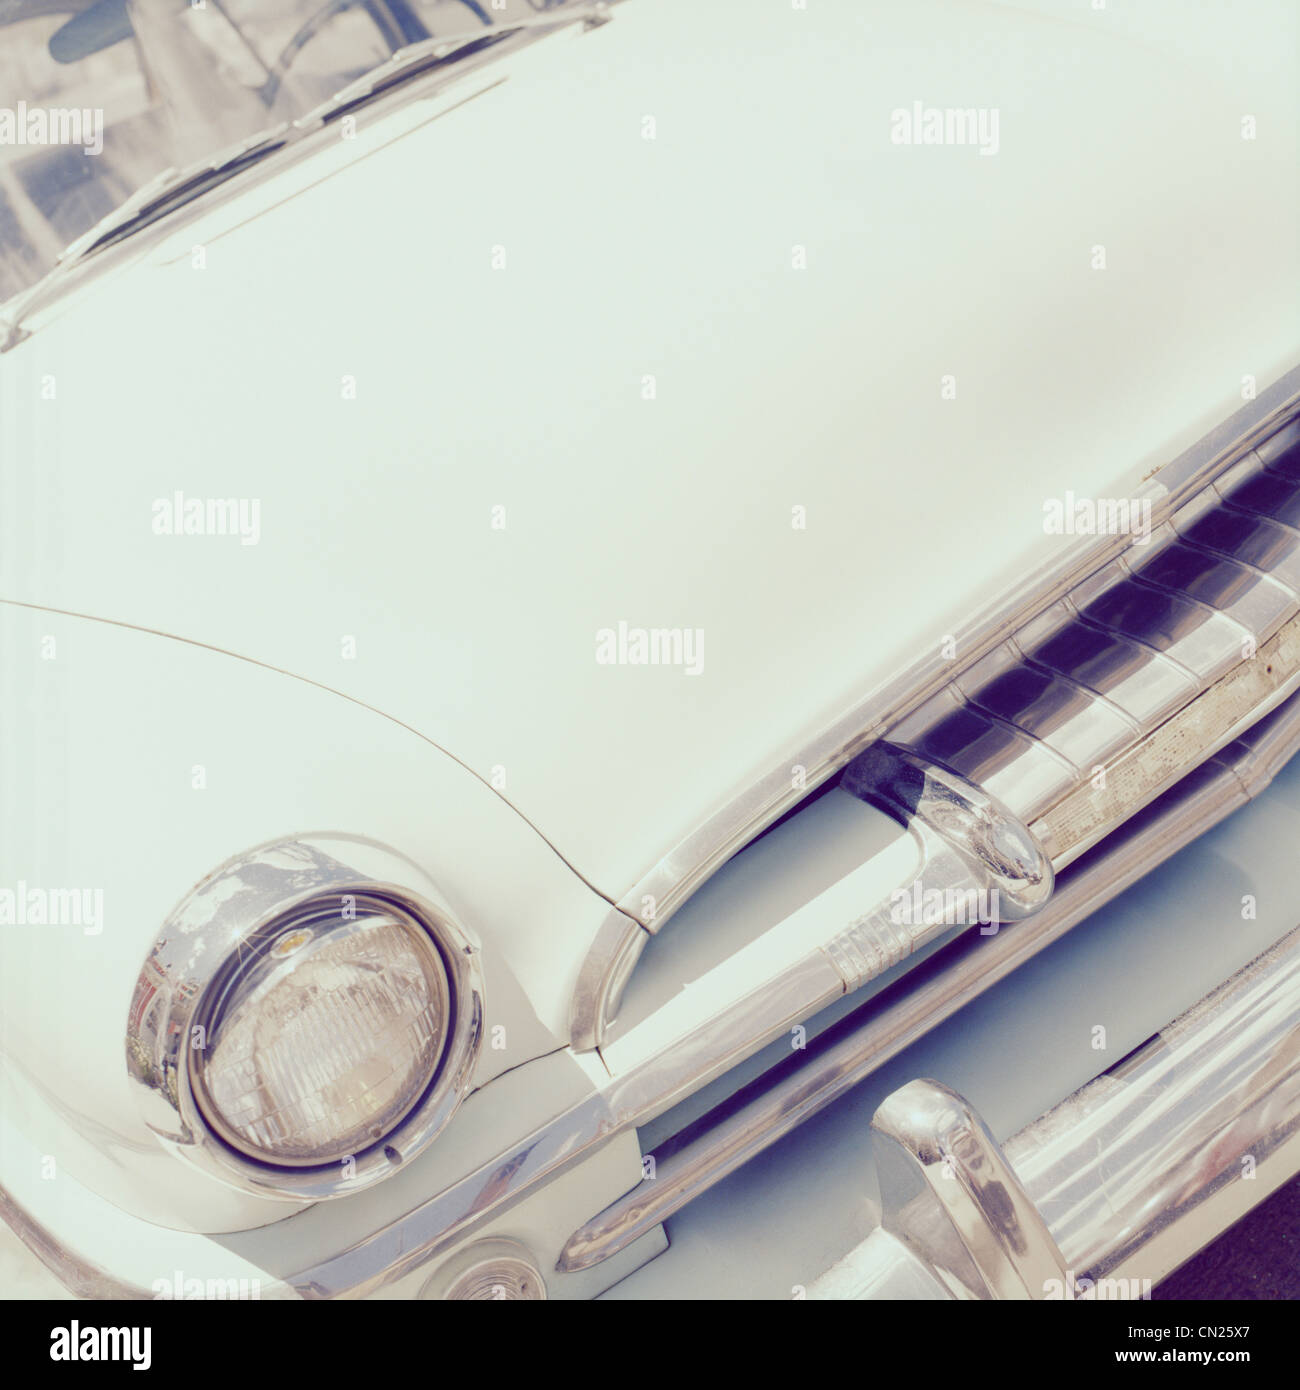 Vintage car, Close up Photo Stock